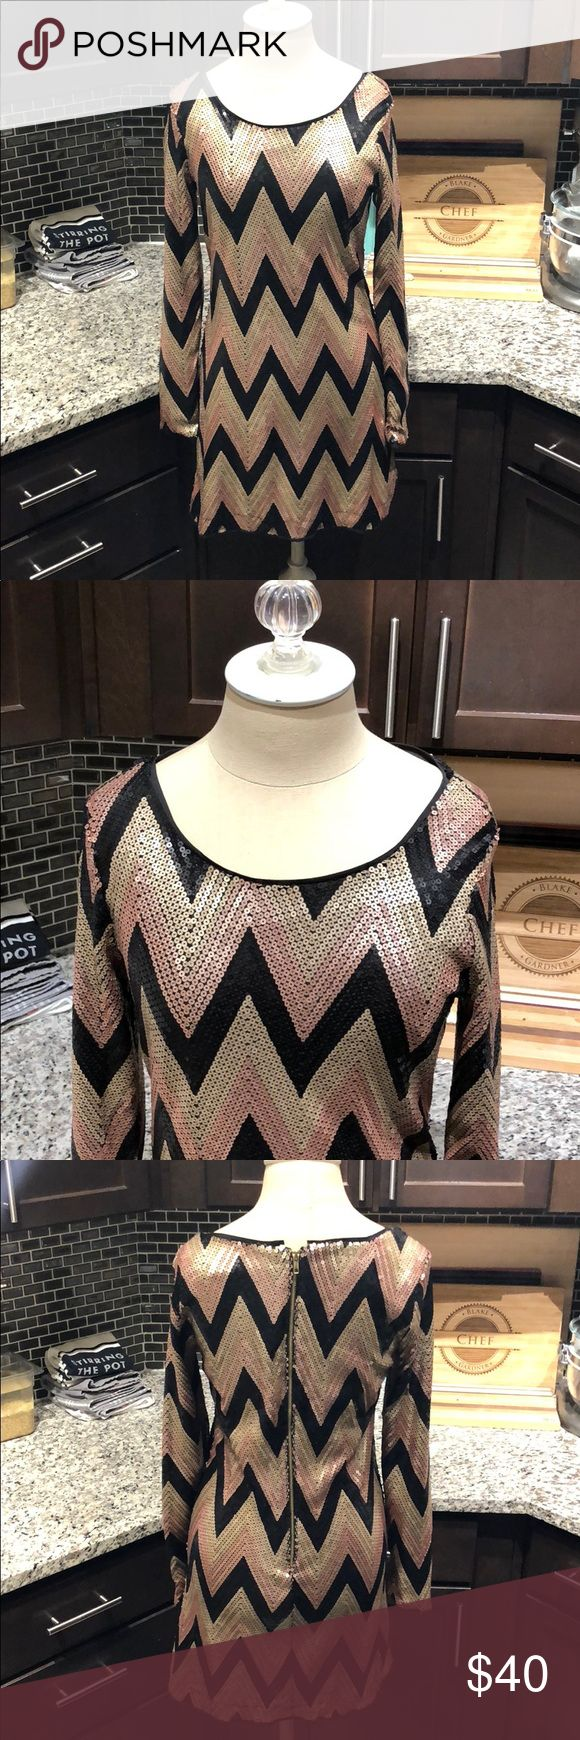 GB size 3 long sleeve sequin dress This is a GB long sleeve geometric patterned dress in perfect condition! Dresses Mini